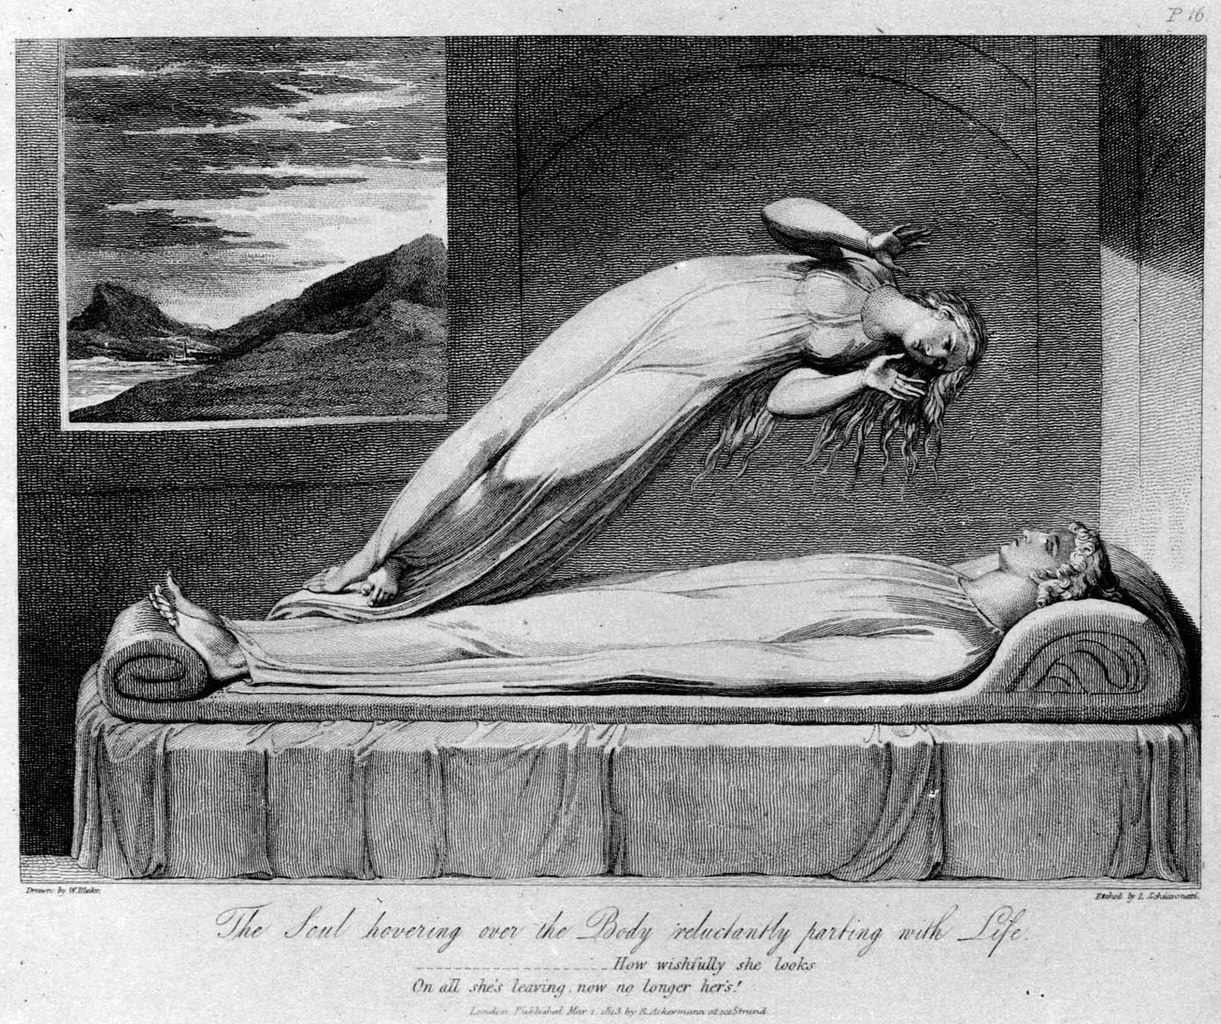 File:Schiavonetti Soul leaving body 1808.jpg - Wikipedia